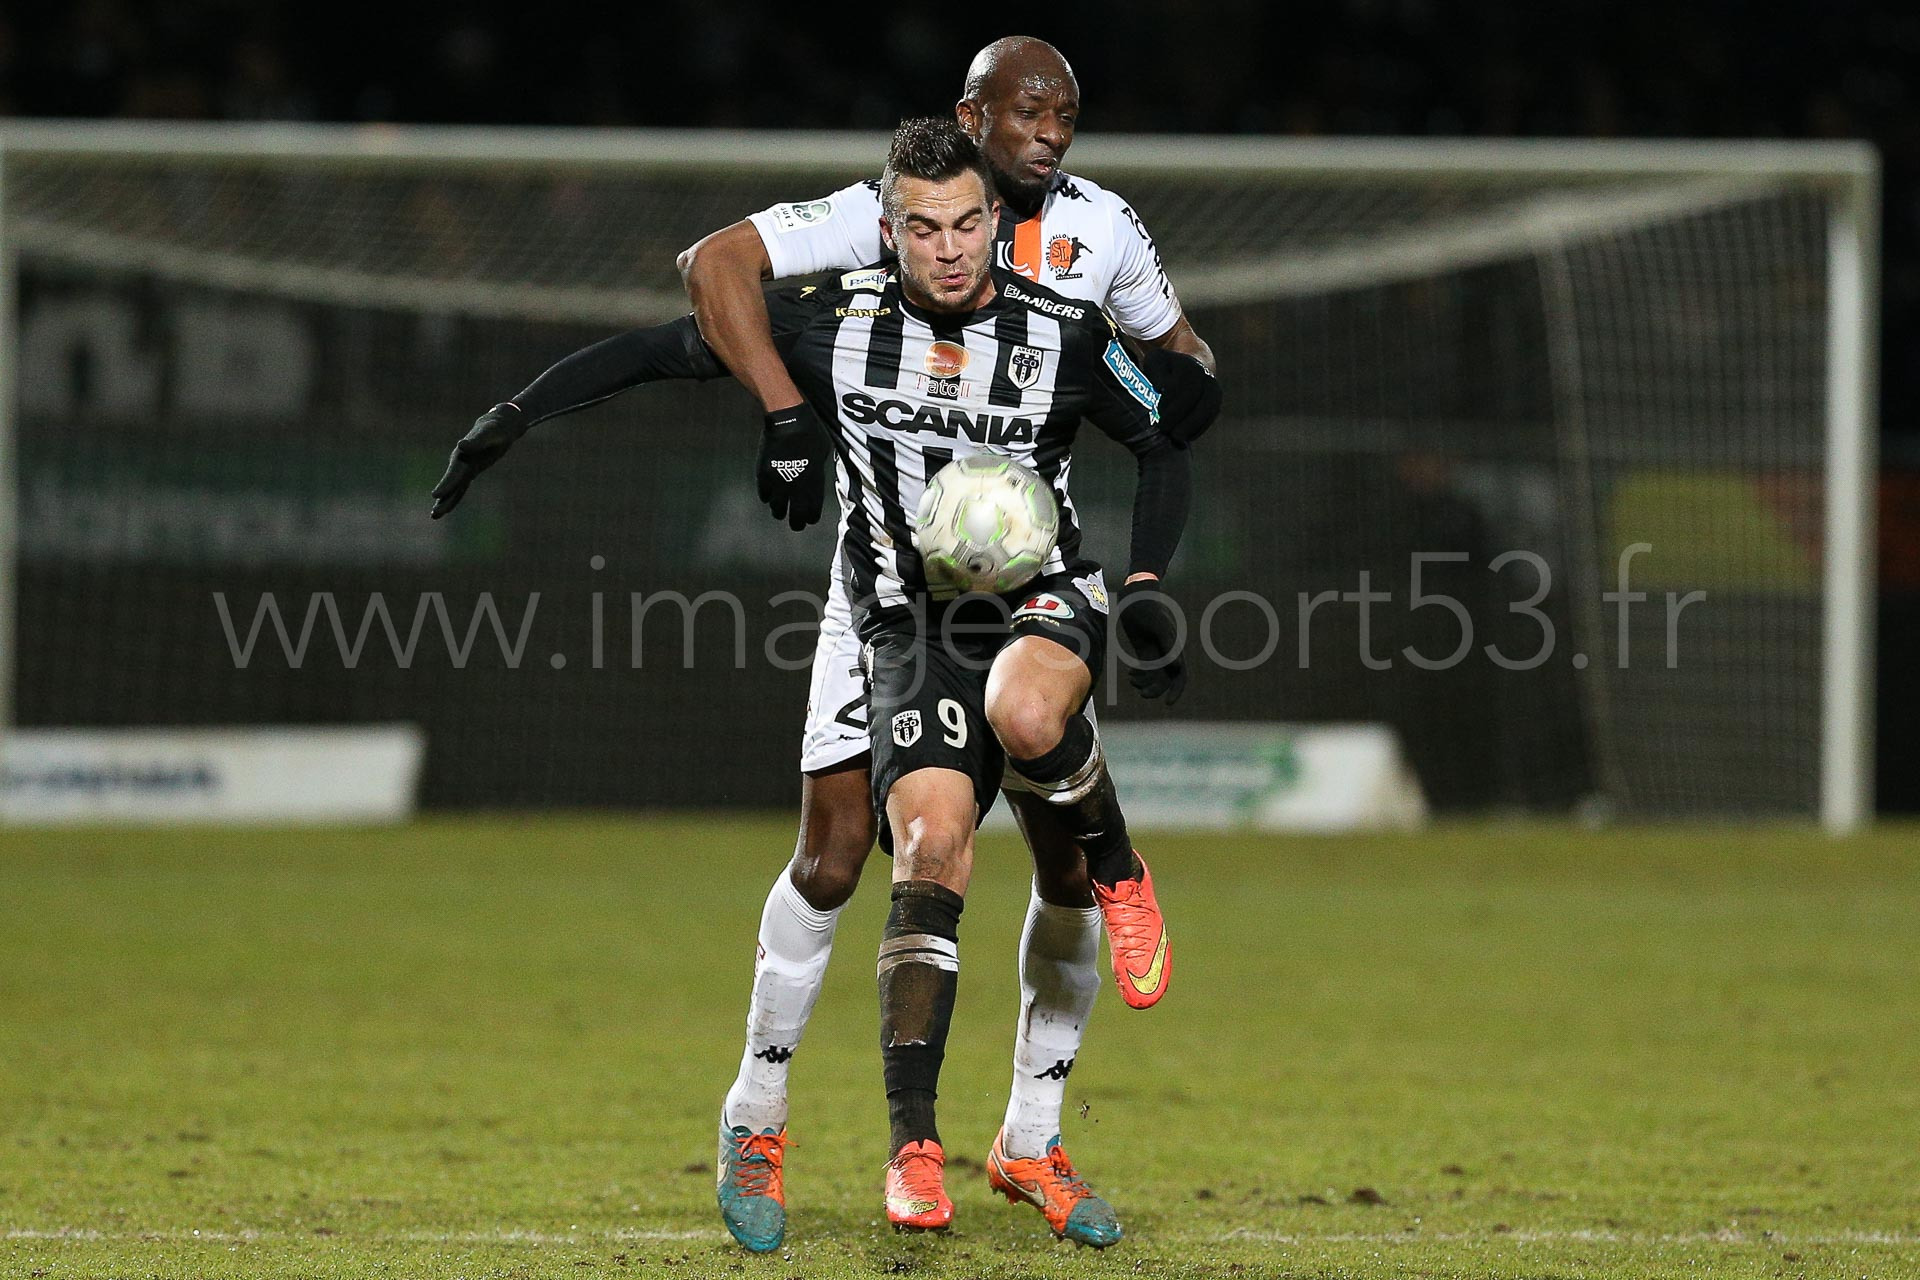 NG-Ligue2-1415-J25-Angers-Laval_31